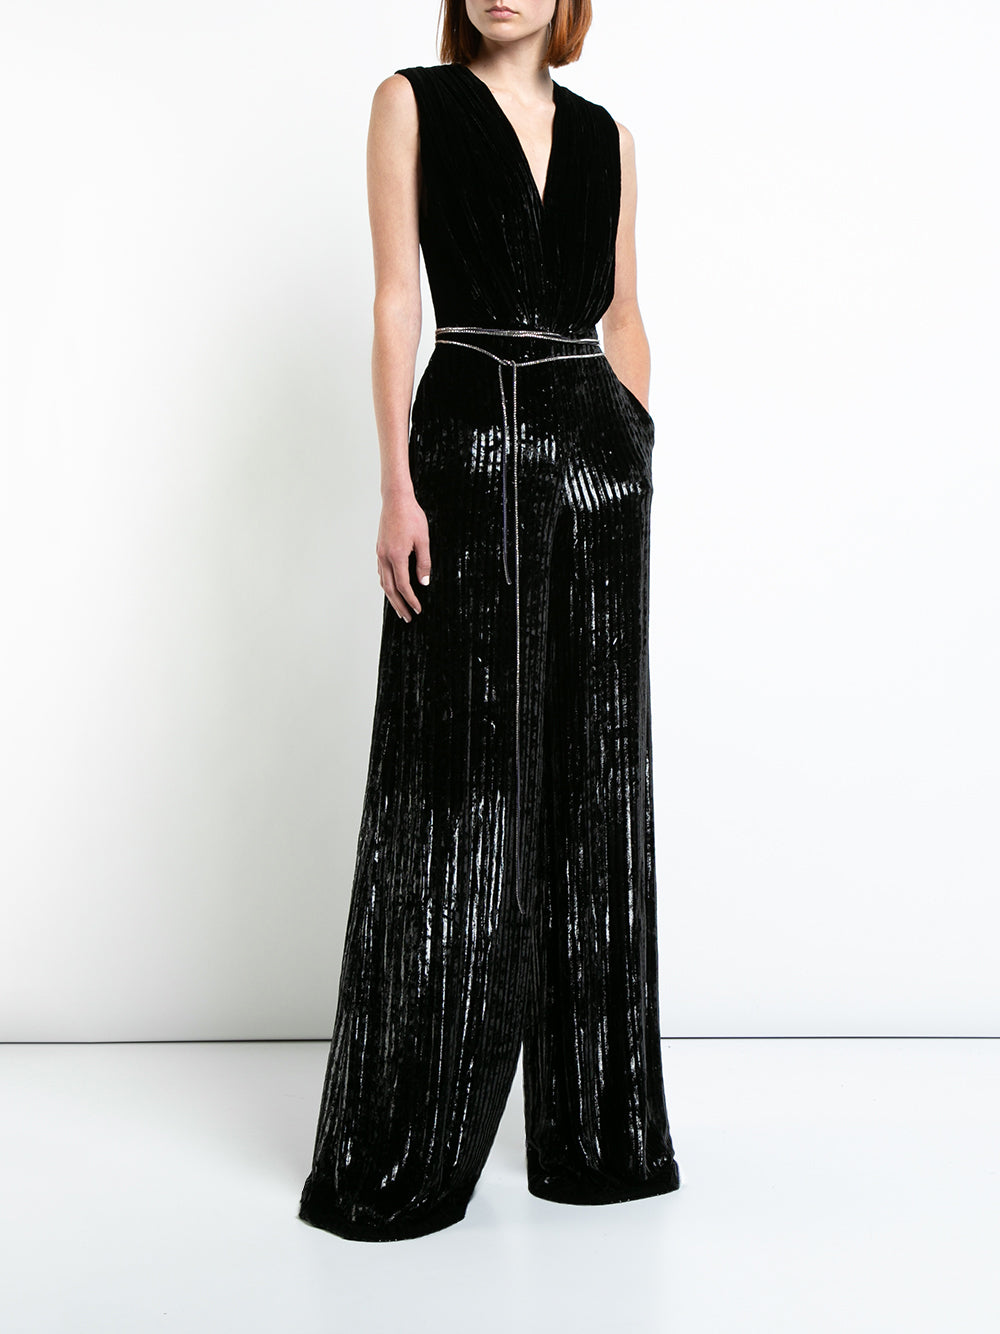 STRIPED SILK VELVET SLEEVELESS V-NECK JUMPSUIT WITH CRYSTAL BELT